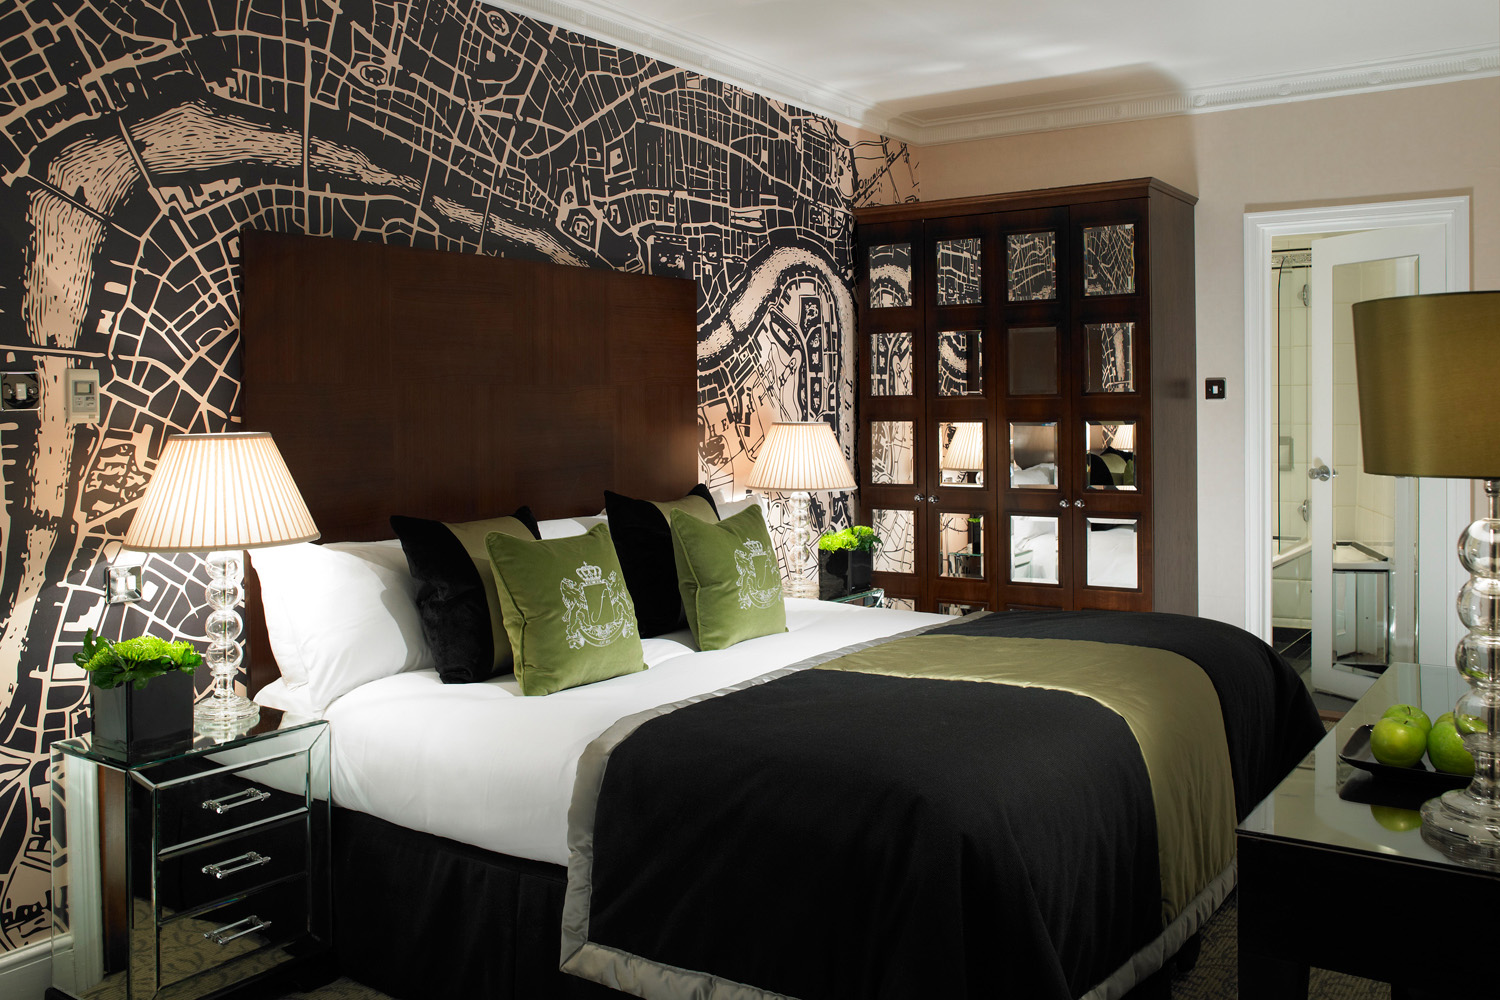 Flemings hotel w1 design box london luxury interior for Design hotel london